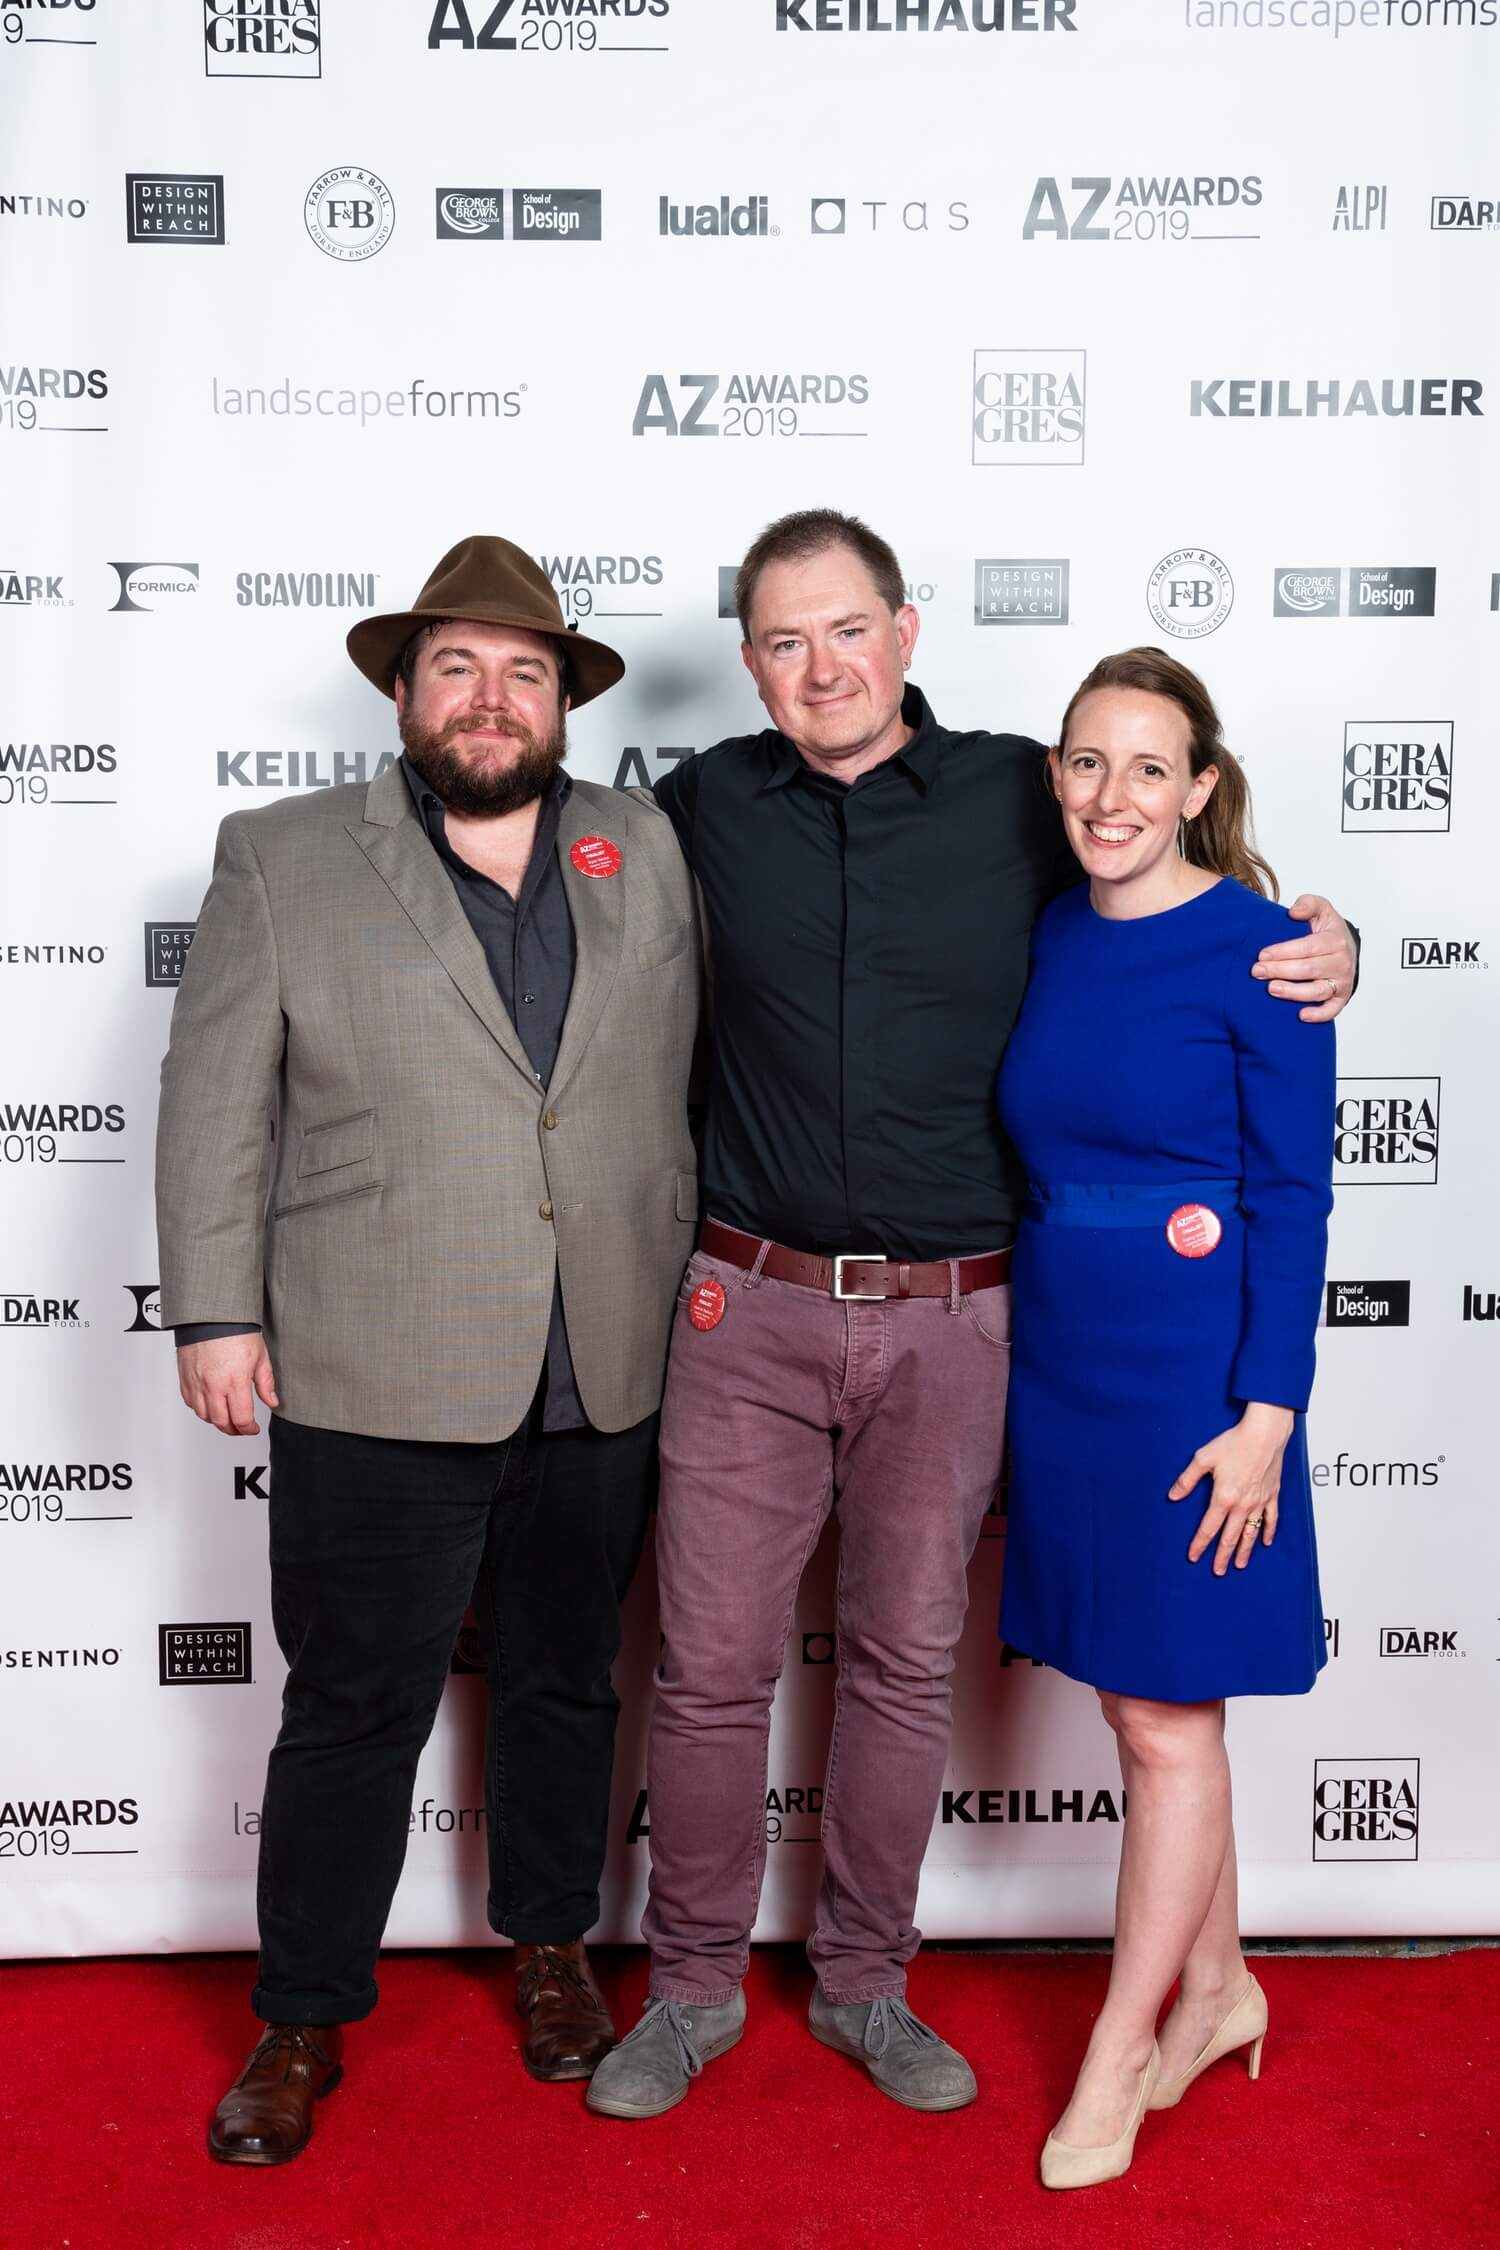 Ryan Sarros, Vladimir Radutny and Fanny Hothan of Chicago firm Vladimir Radutny Architects, which picked up an AZ Award and People's Choice for the Michigan Loft interior, AZ Awards 2019: Scenes from the Gala